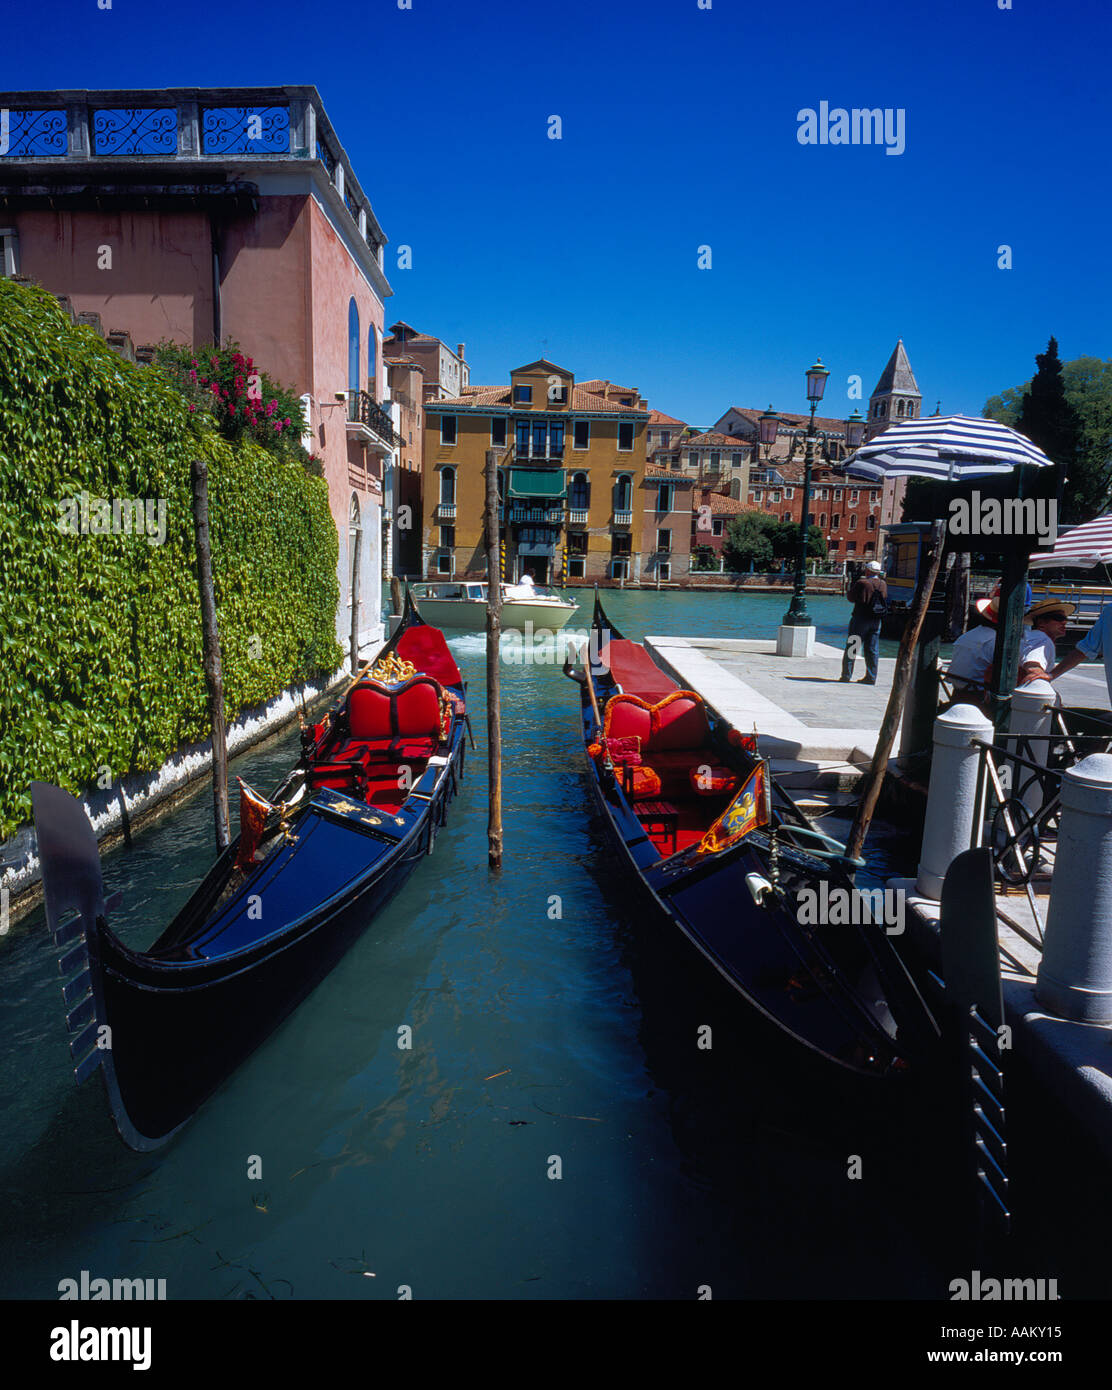 Gondola at Canal Grande, Venice, UNESCO World Heritage Site, Italy,  Europe. Photo by Willy Matheisl - Stock Image